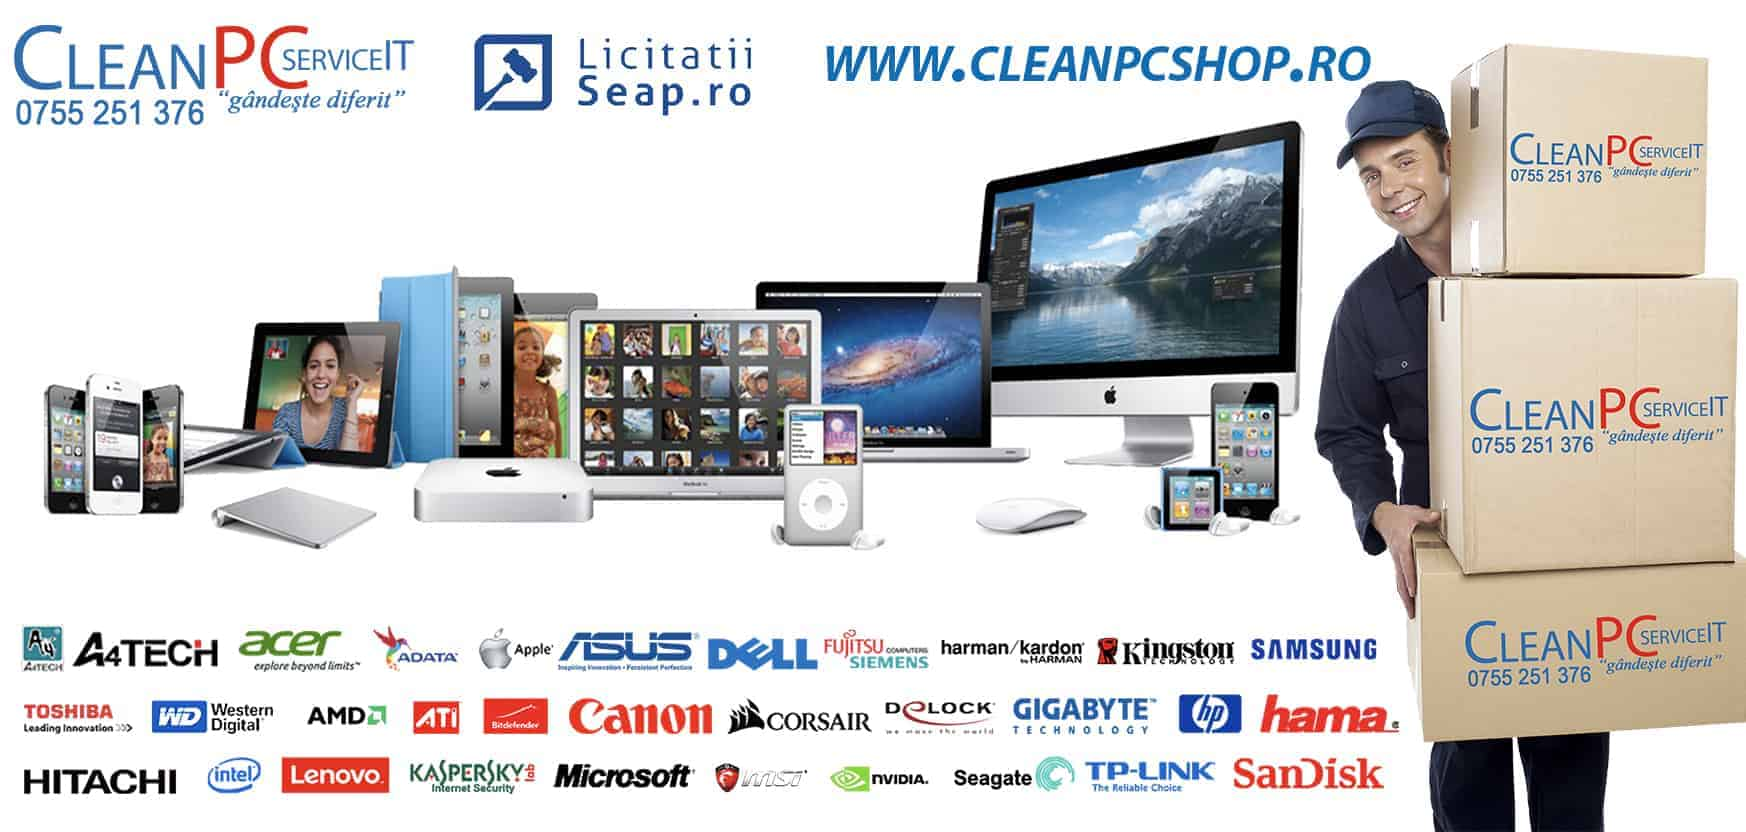 cleanpcshop.ro